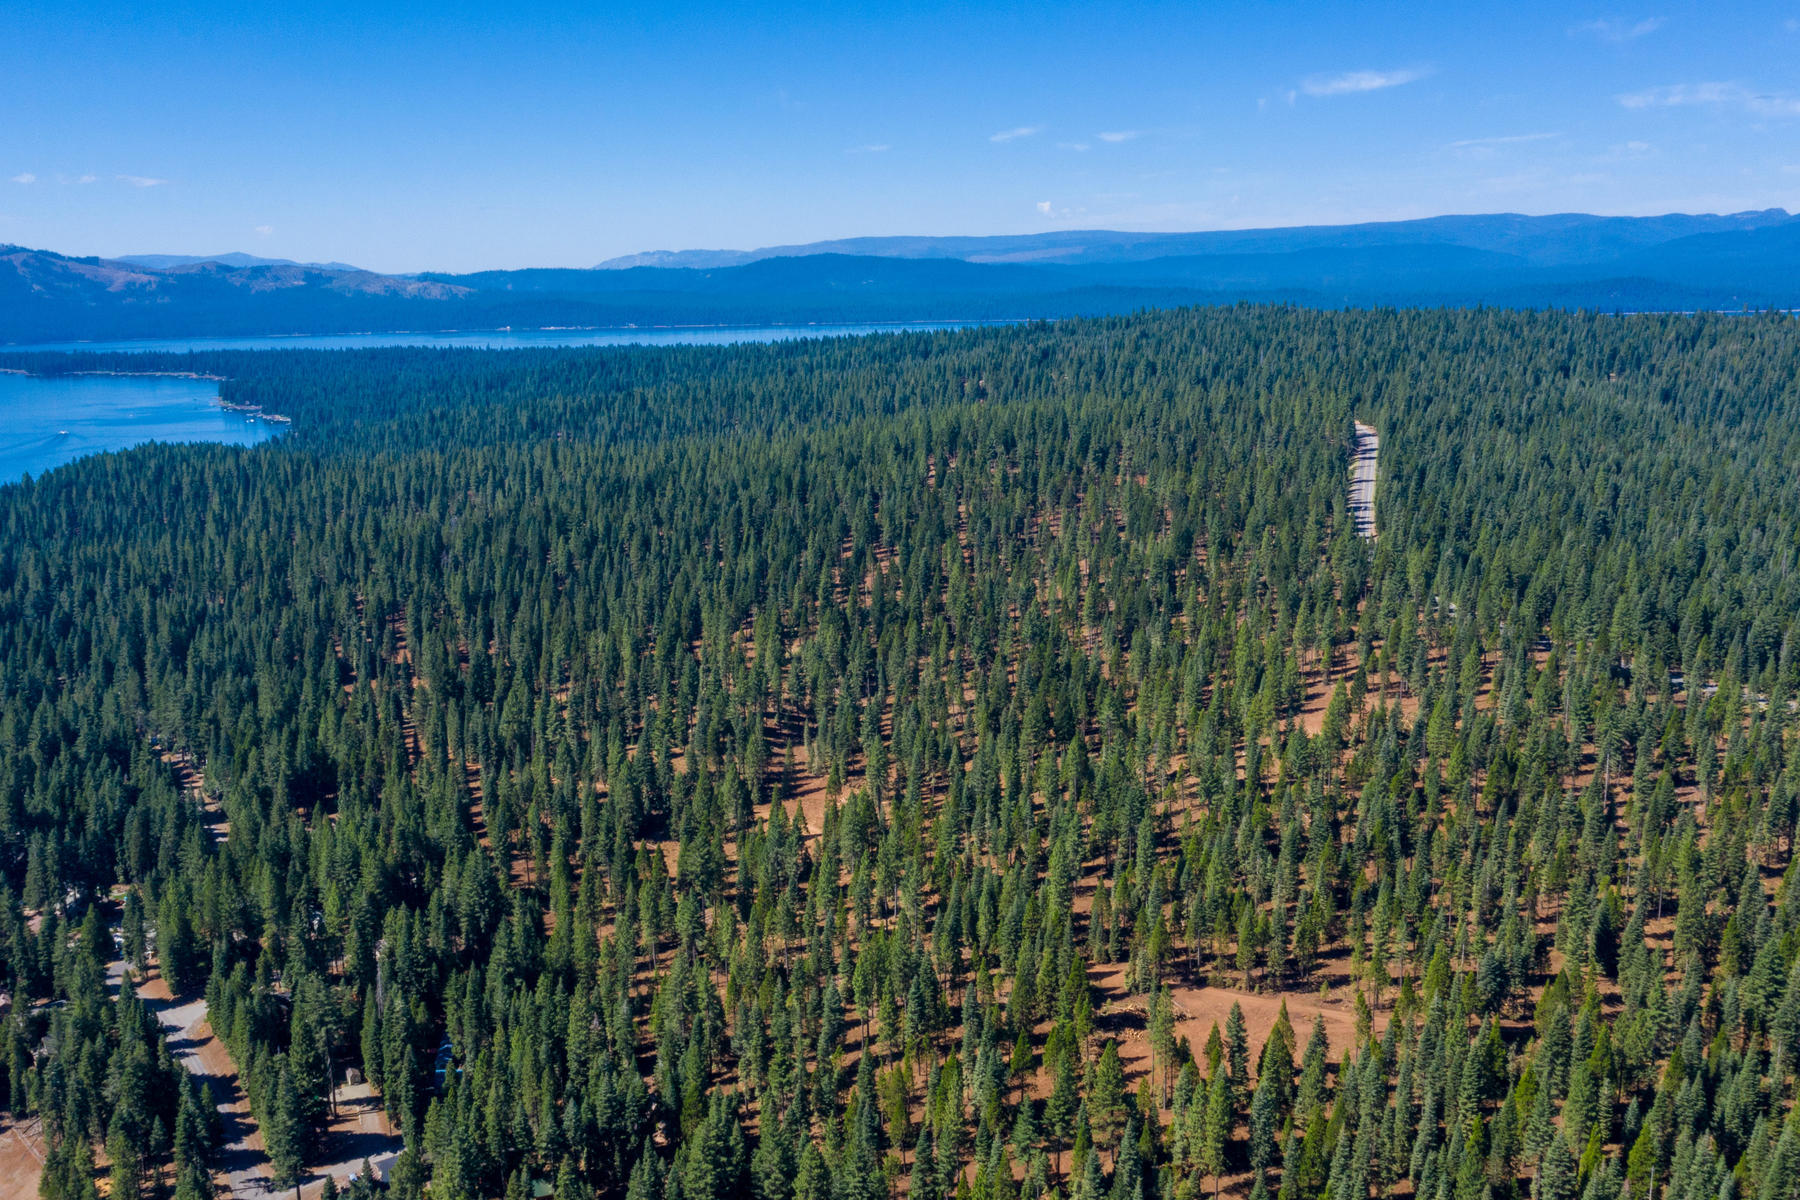 Property for Active at 103-02 Clifford Drive Lake Almanor, California 96137 103-02 Clifford Drive Lake Almanor, California 96137 United States